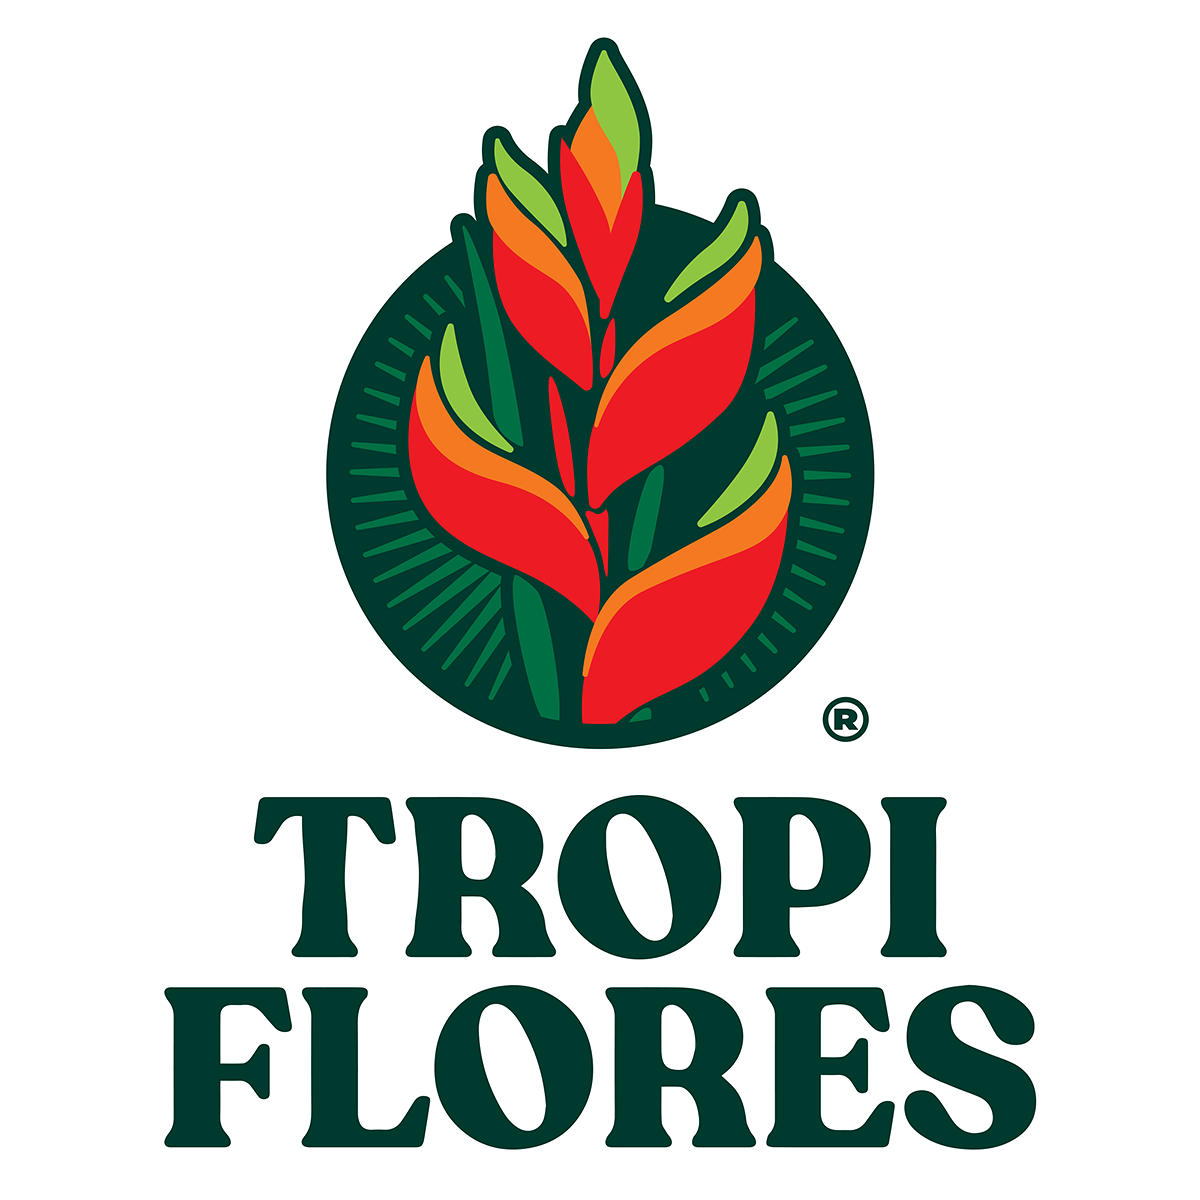 The Tropi Flores logo (tropical flowers), color version. Floral logo. Heliconia, the flower in the logotype.